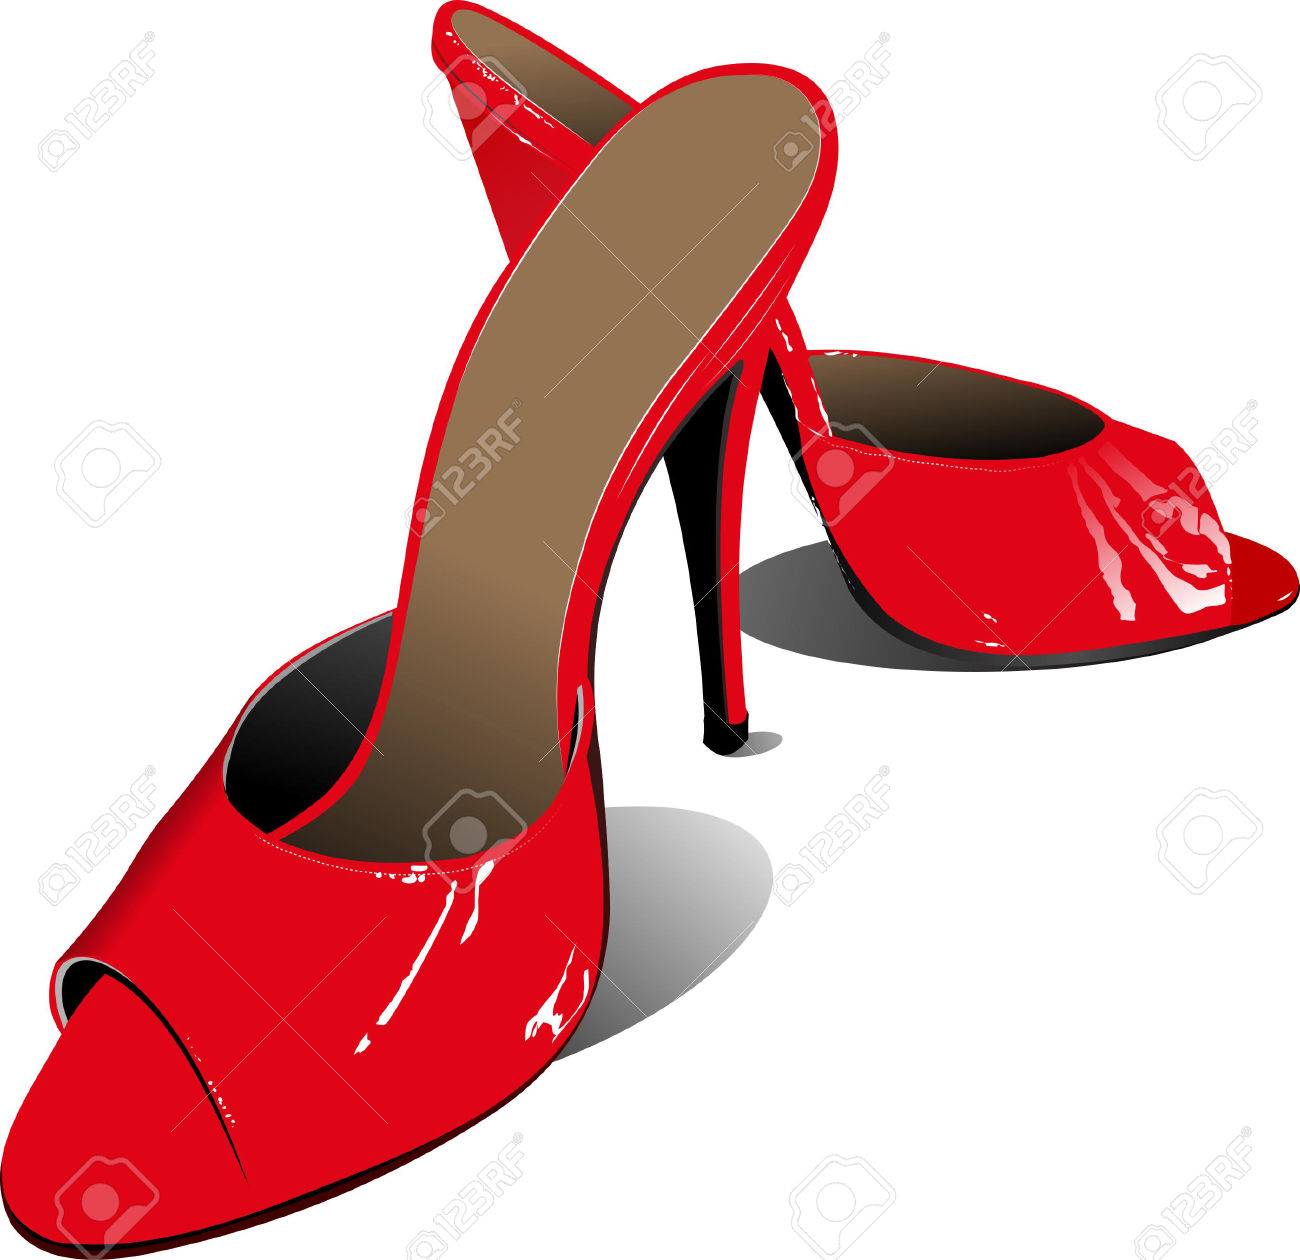 1300x1260 Shoes clipart, Suggestions for shoes clipart, Download shoes clipart